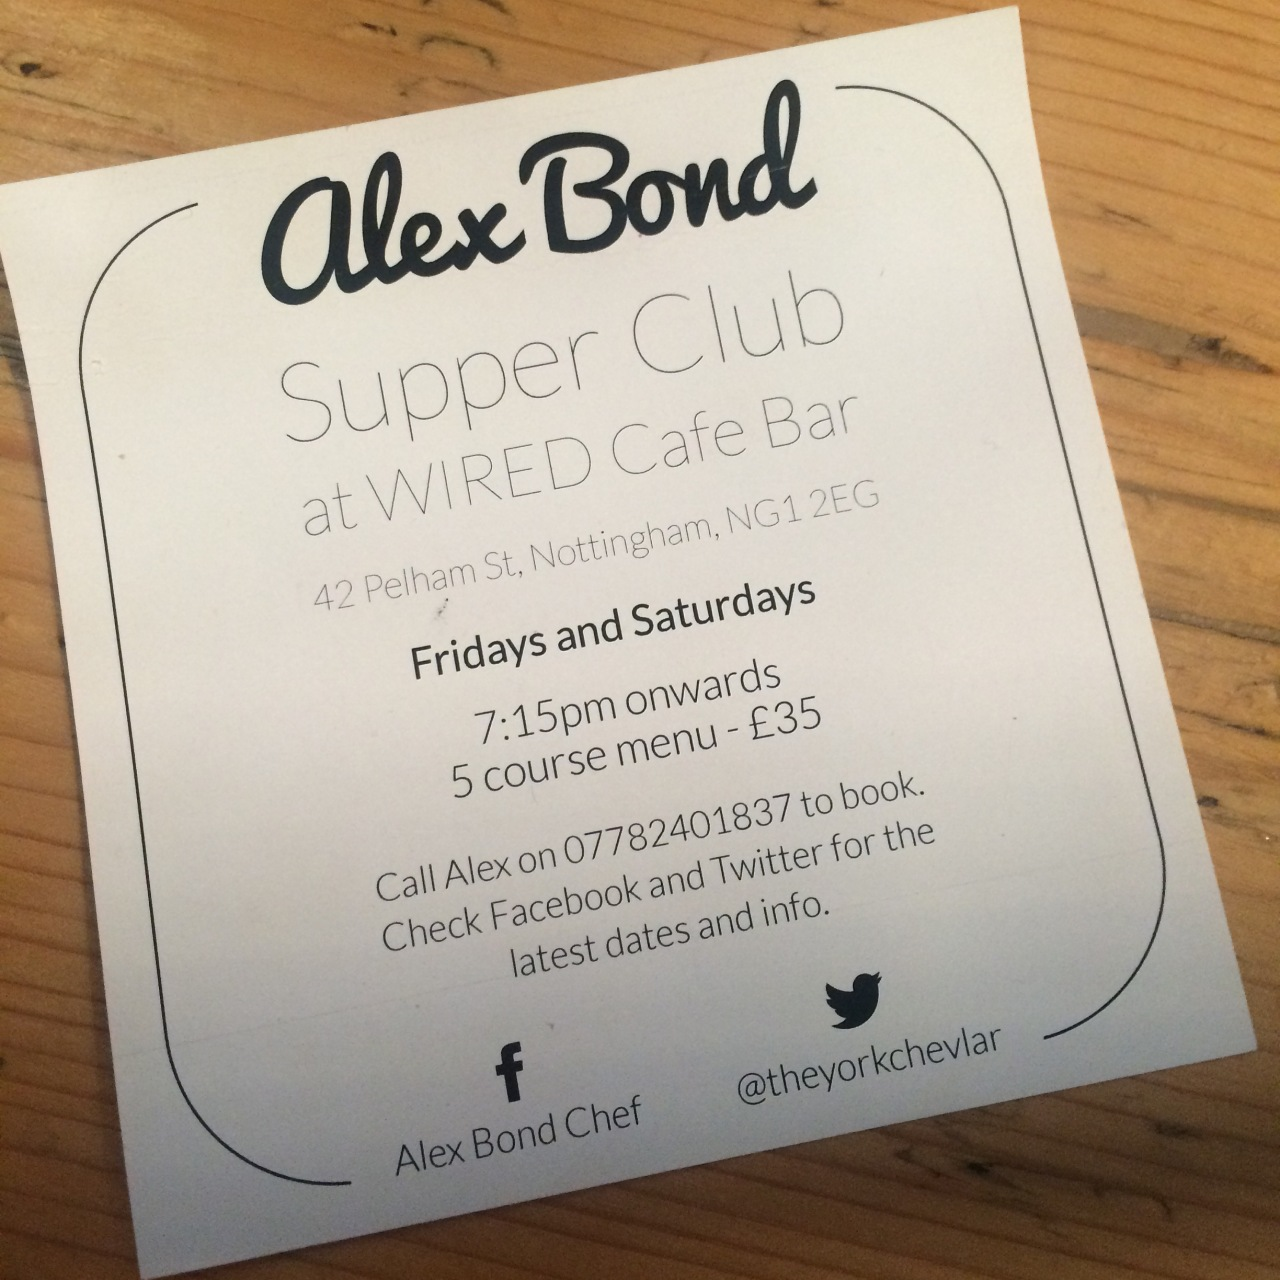 Alex Bond Supper Club at Wired Cafe Bar, Nottingham